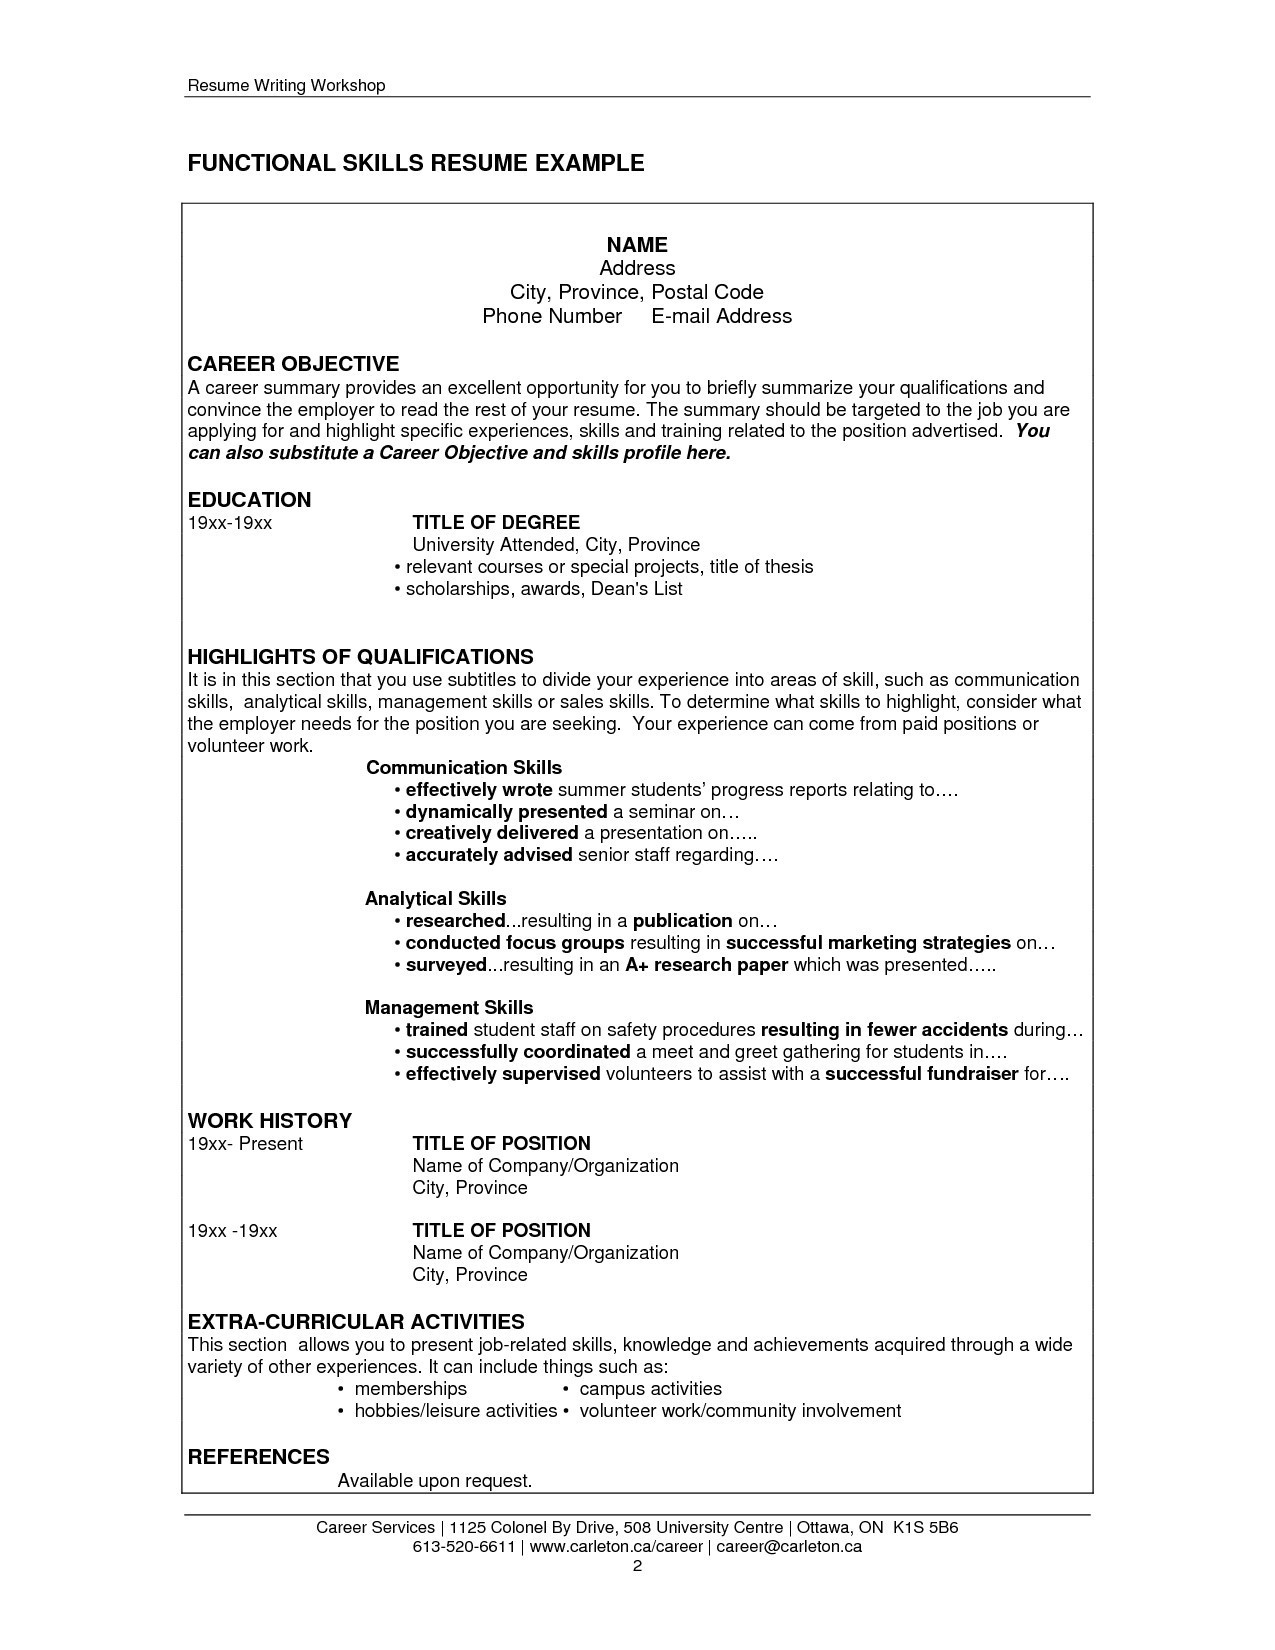 Resume Summary Section - Resume Examples Skills and Abilities Refrence Resume Skills and